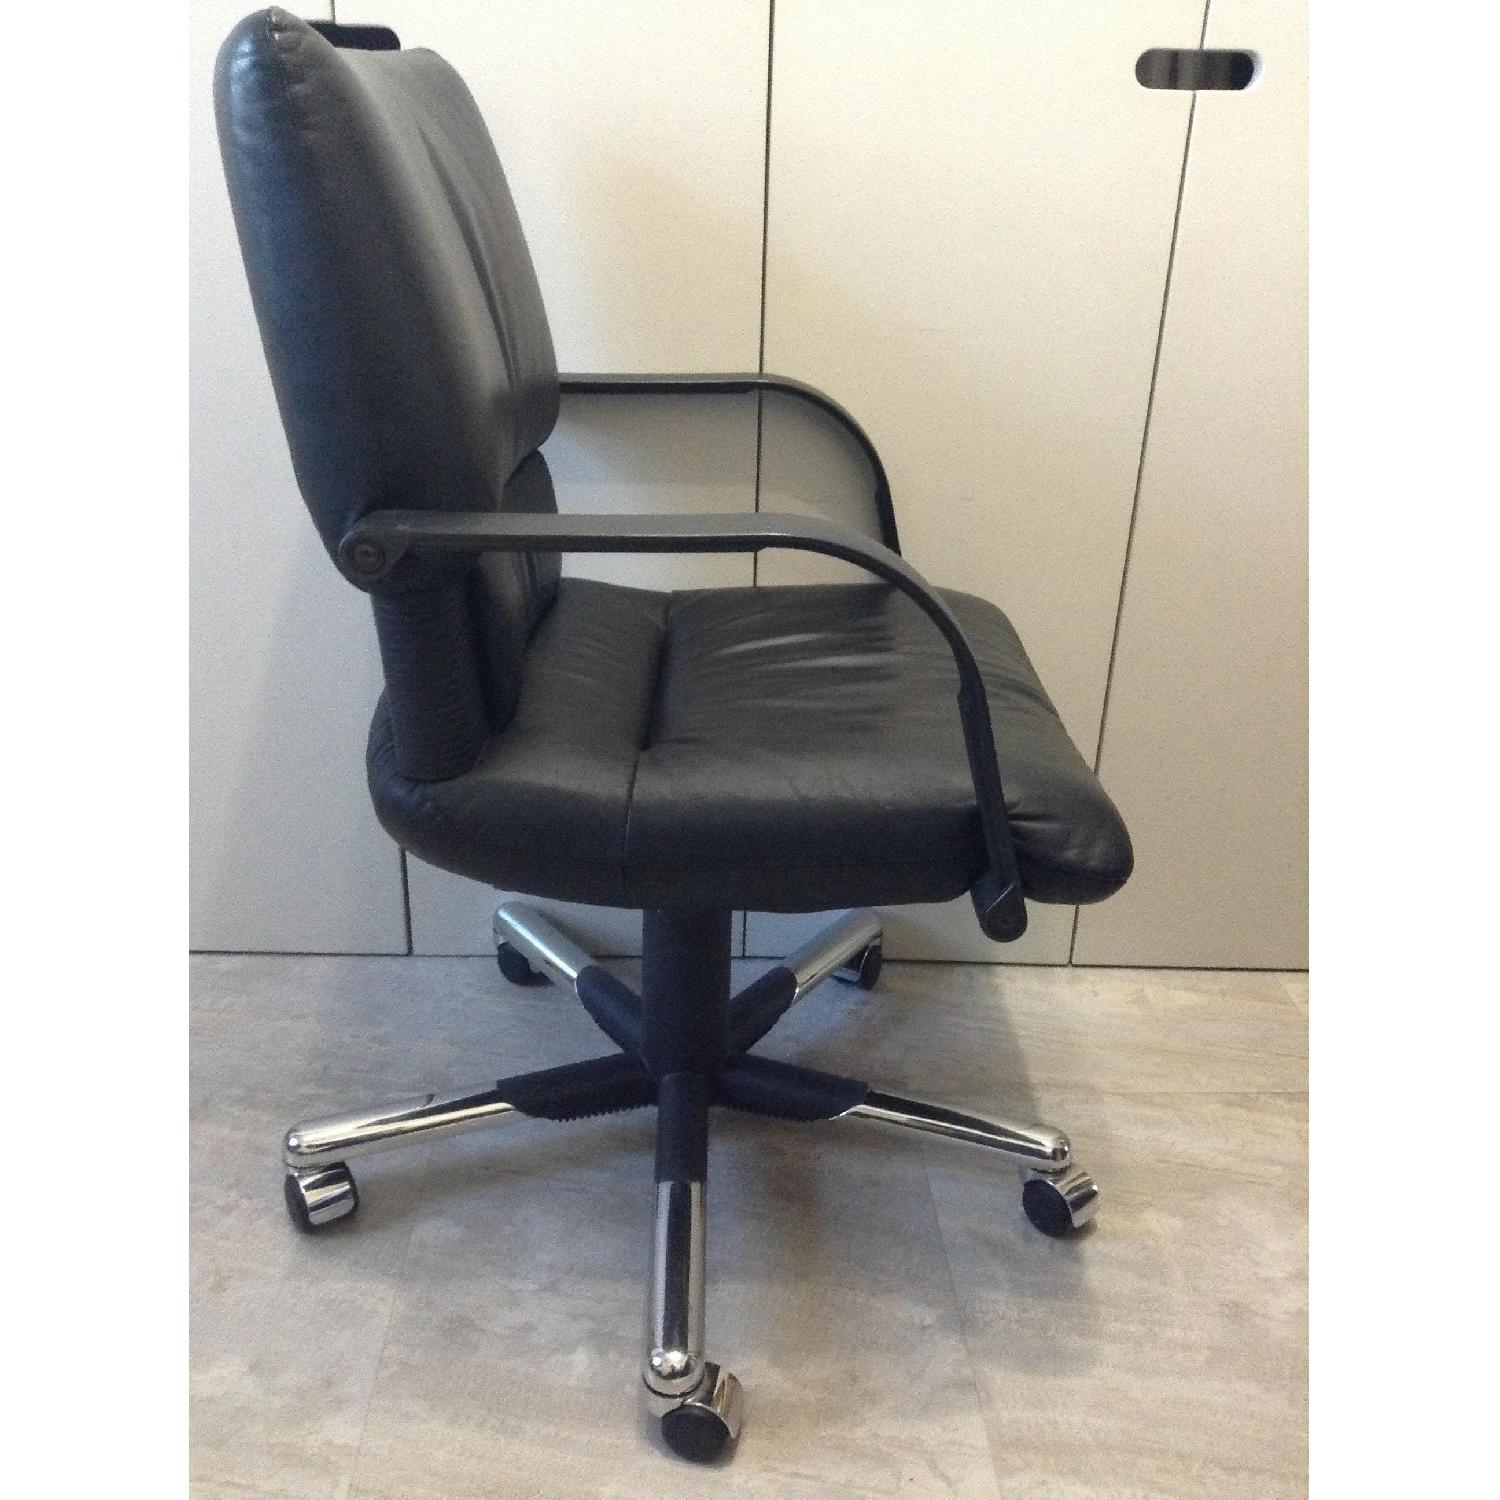 Vitra Black Leather Swivel Chair By Mario Bellini - image-2